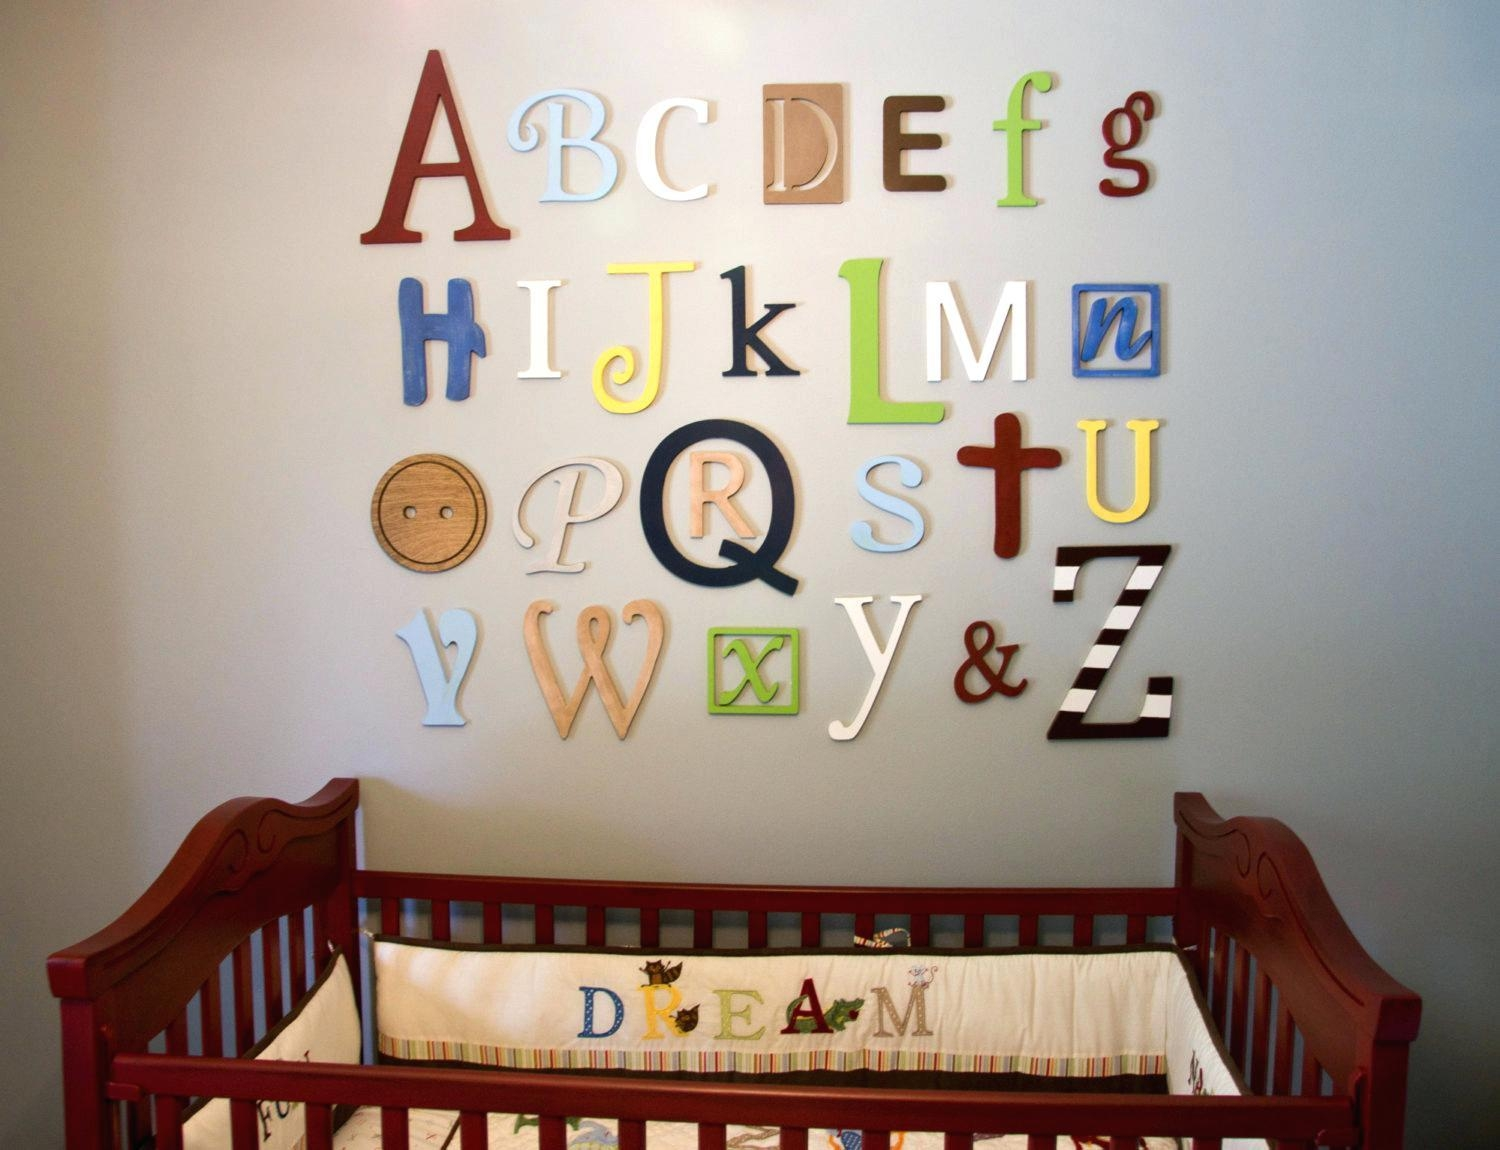 Wall Ideas : Decorative Letters For Wall Australia Decorative Within Decorative Initials Wall Art (Image 14 of 20)